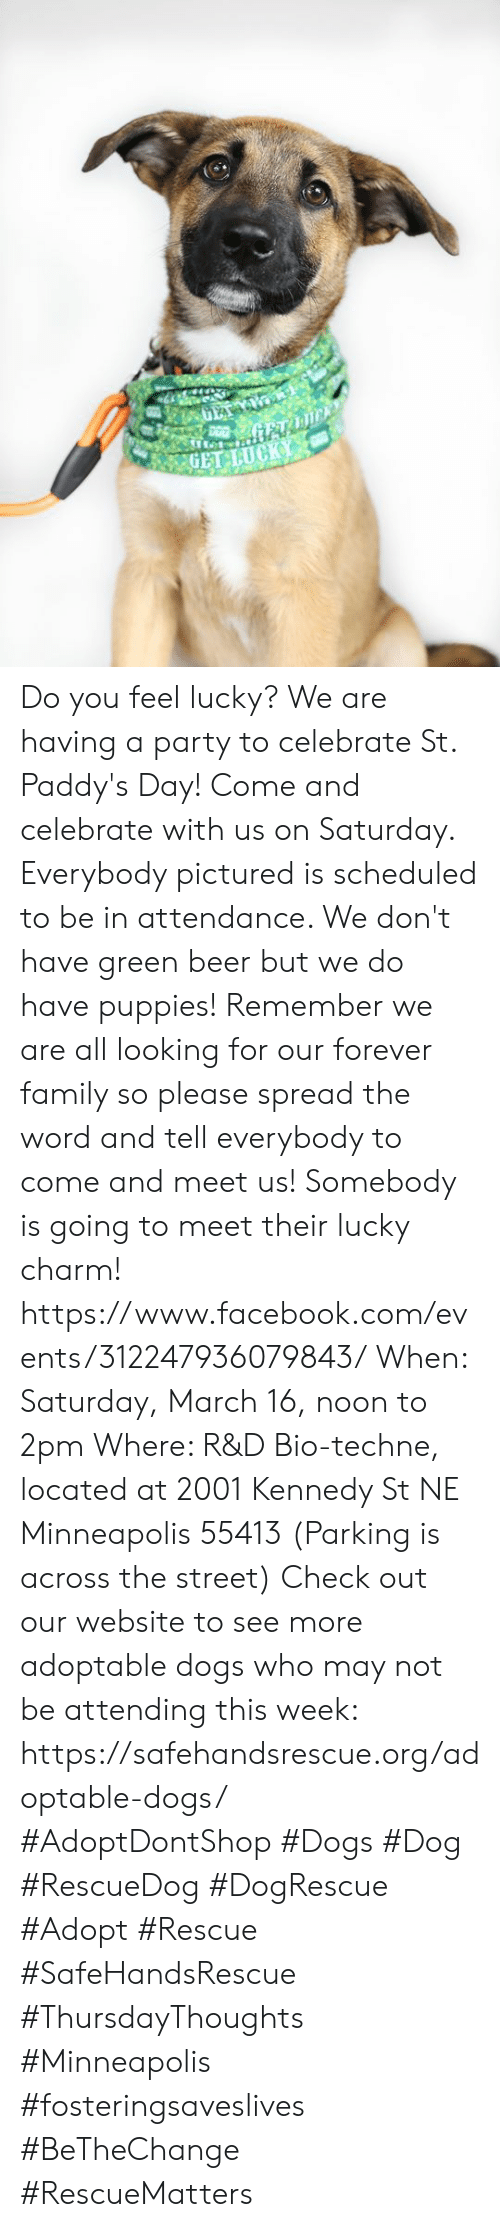 Beer, Dogs, and Facebook: Do you feel lucky? We are having a party to celebrate St. Paddy's Day! Come and celebrate with us on Saturday. Everybody pictured is scheduled to be in attendance. We don't have green beer but we do have puppies! Remember we are all looking for our forever family so please spread the word and tell everybody to come and meet us! Somebody is going to meet their lucky charm!  https://www.facebook.com/events/312247936079843/ When: Saturday, March 16, noon to 2pm  Where: R&D Bio-techne, located at 2001 Kennedy St NE Minneapolis 55413 (Parking is across the street)  Check out our website to see more adoptable dogs who may not be attending this week: https://safehandsrescue.org/adoptable-dogs/  #AdoptDontShop #Dogs #Dog #RescueDog #DogRescue #Adopt #Rescue #SafeHandsRescue #ThursdayThoughts  #Minneapolis #fosteringsaveslives #BeTheChange #RescueMatters